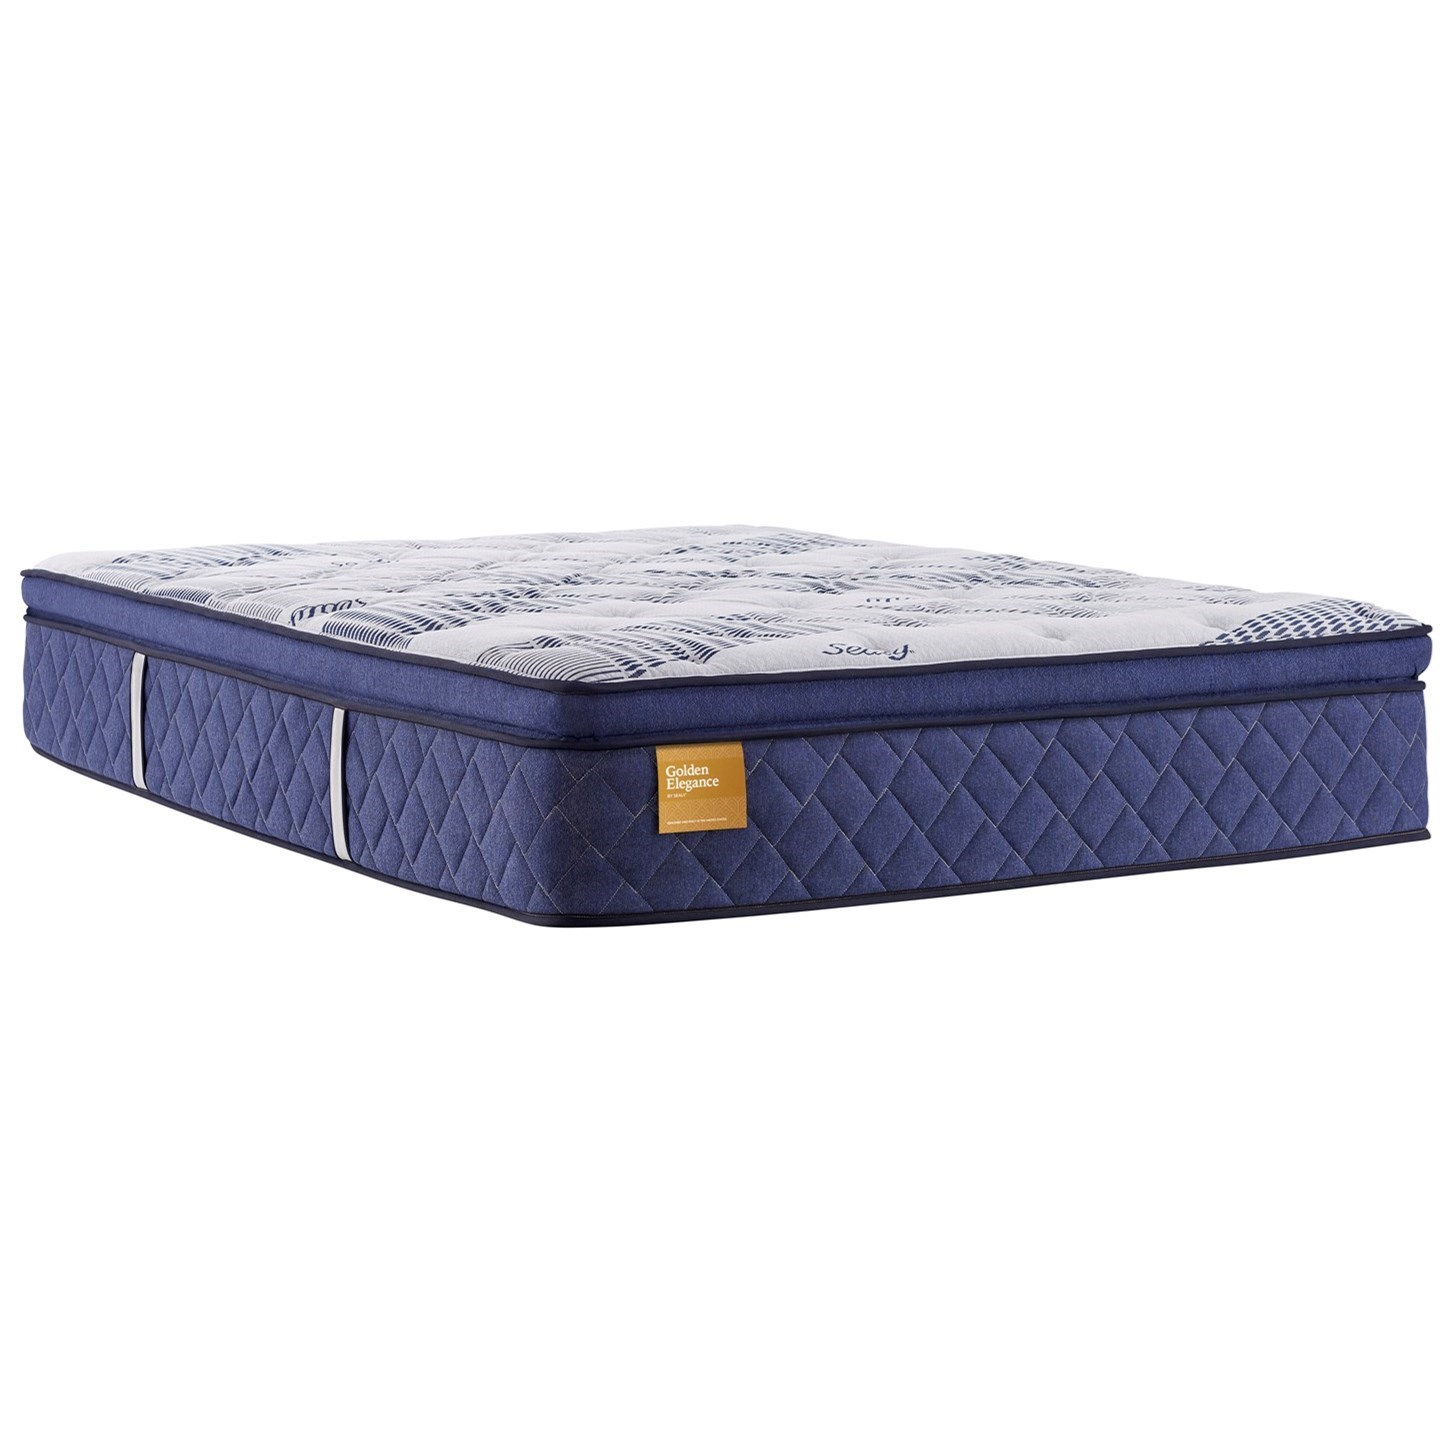 "Gilded Breath Plush PT B4 Twin 14"" Plush Pillow Top Mattress by Sealy at Beck's Furniture"